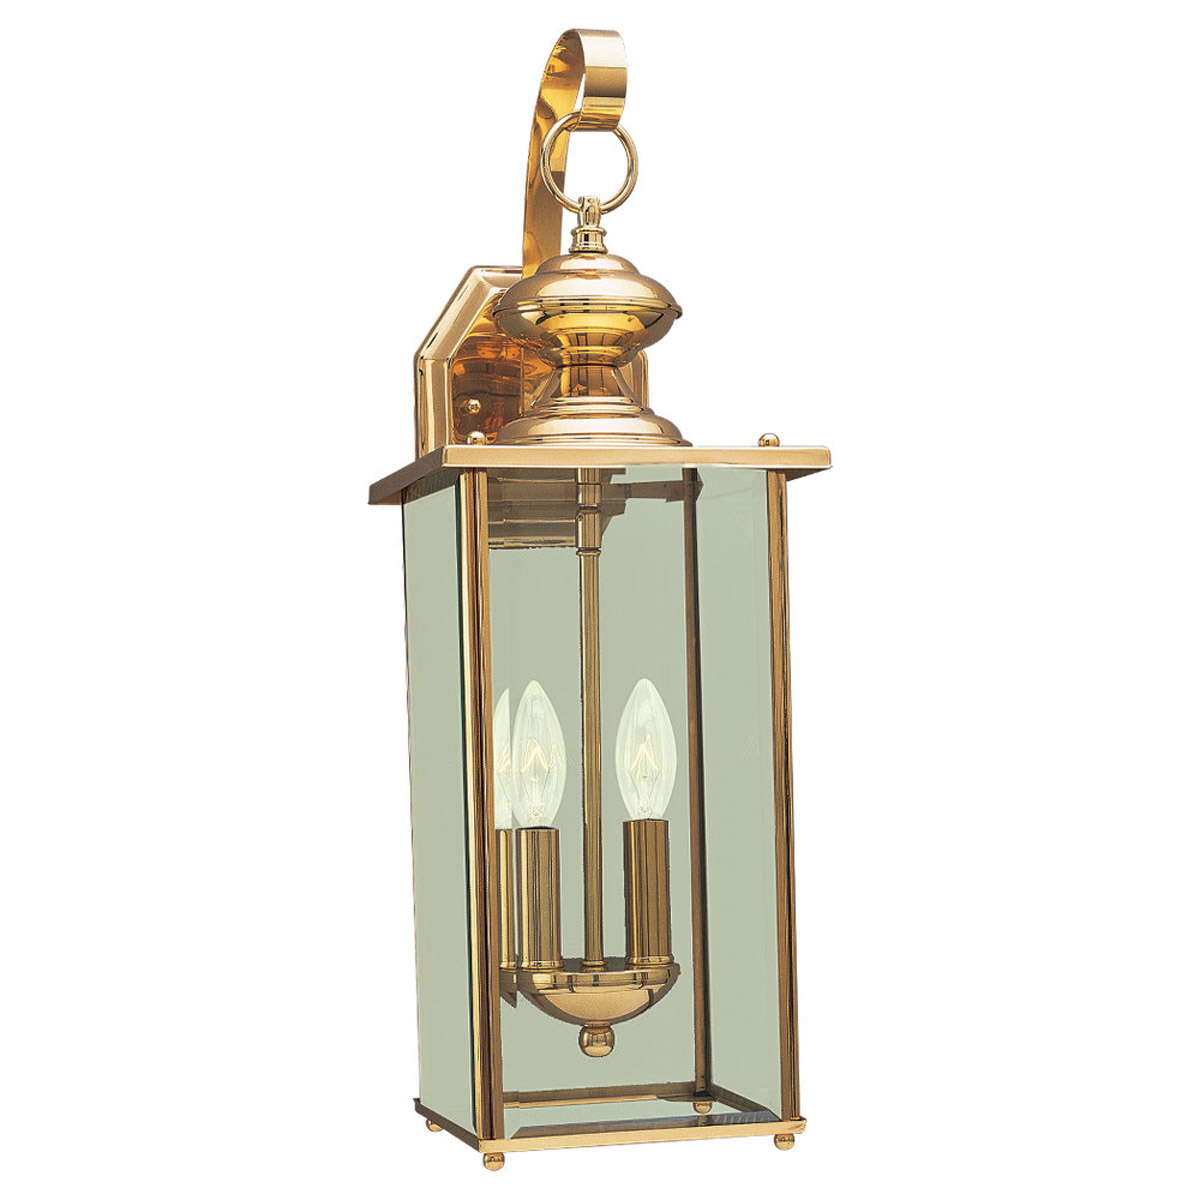 Sea Gull Lighting Jamestowne 2 Light Outdoor Wall Lantern in Polished Brass 8468-02 photo